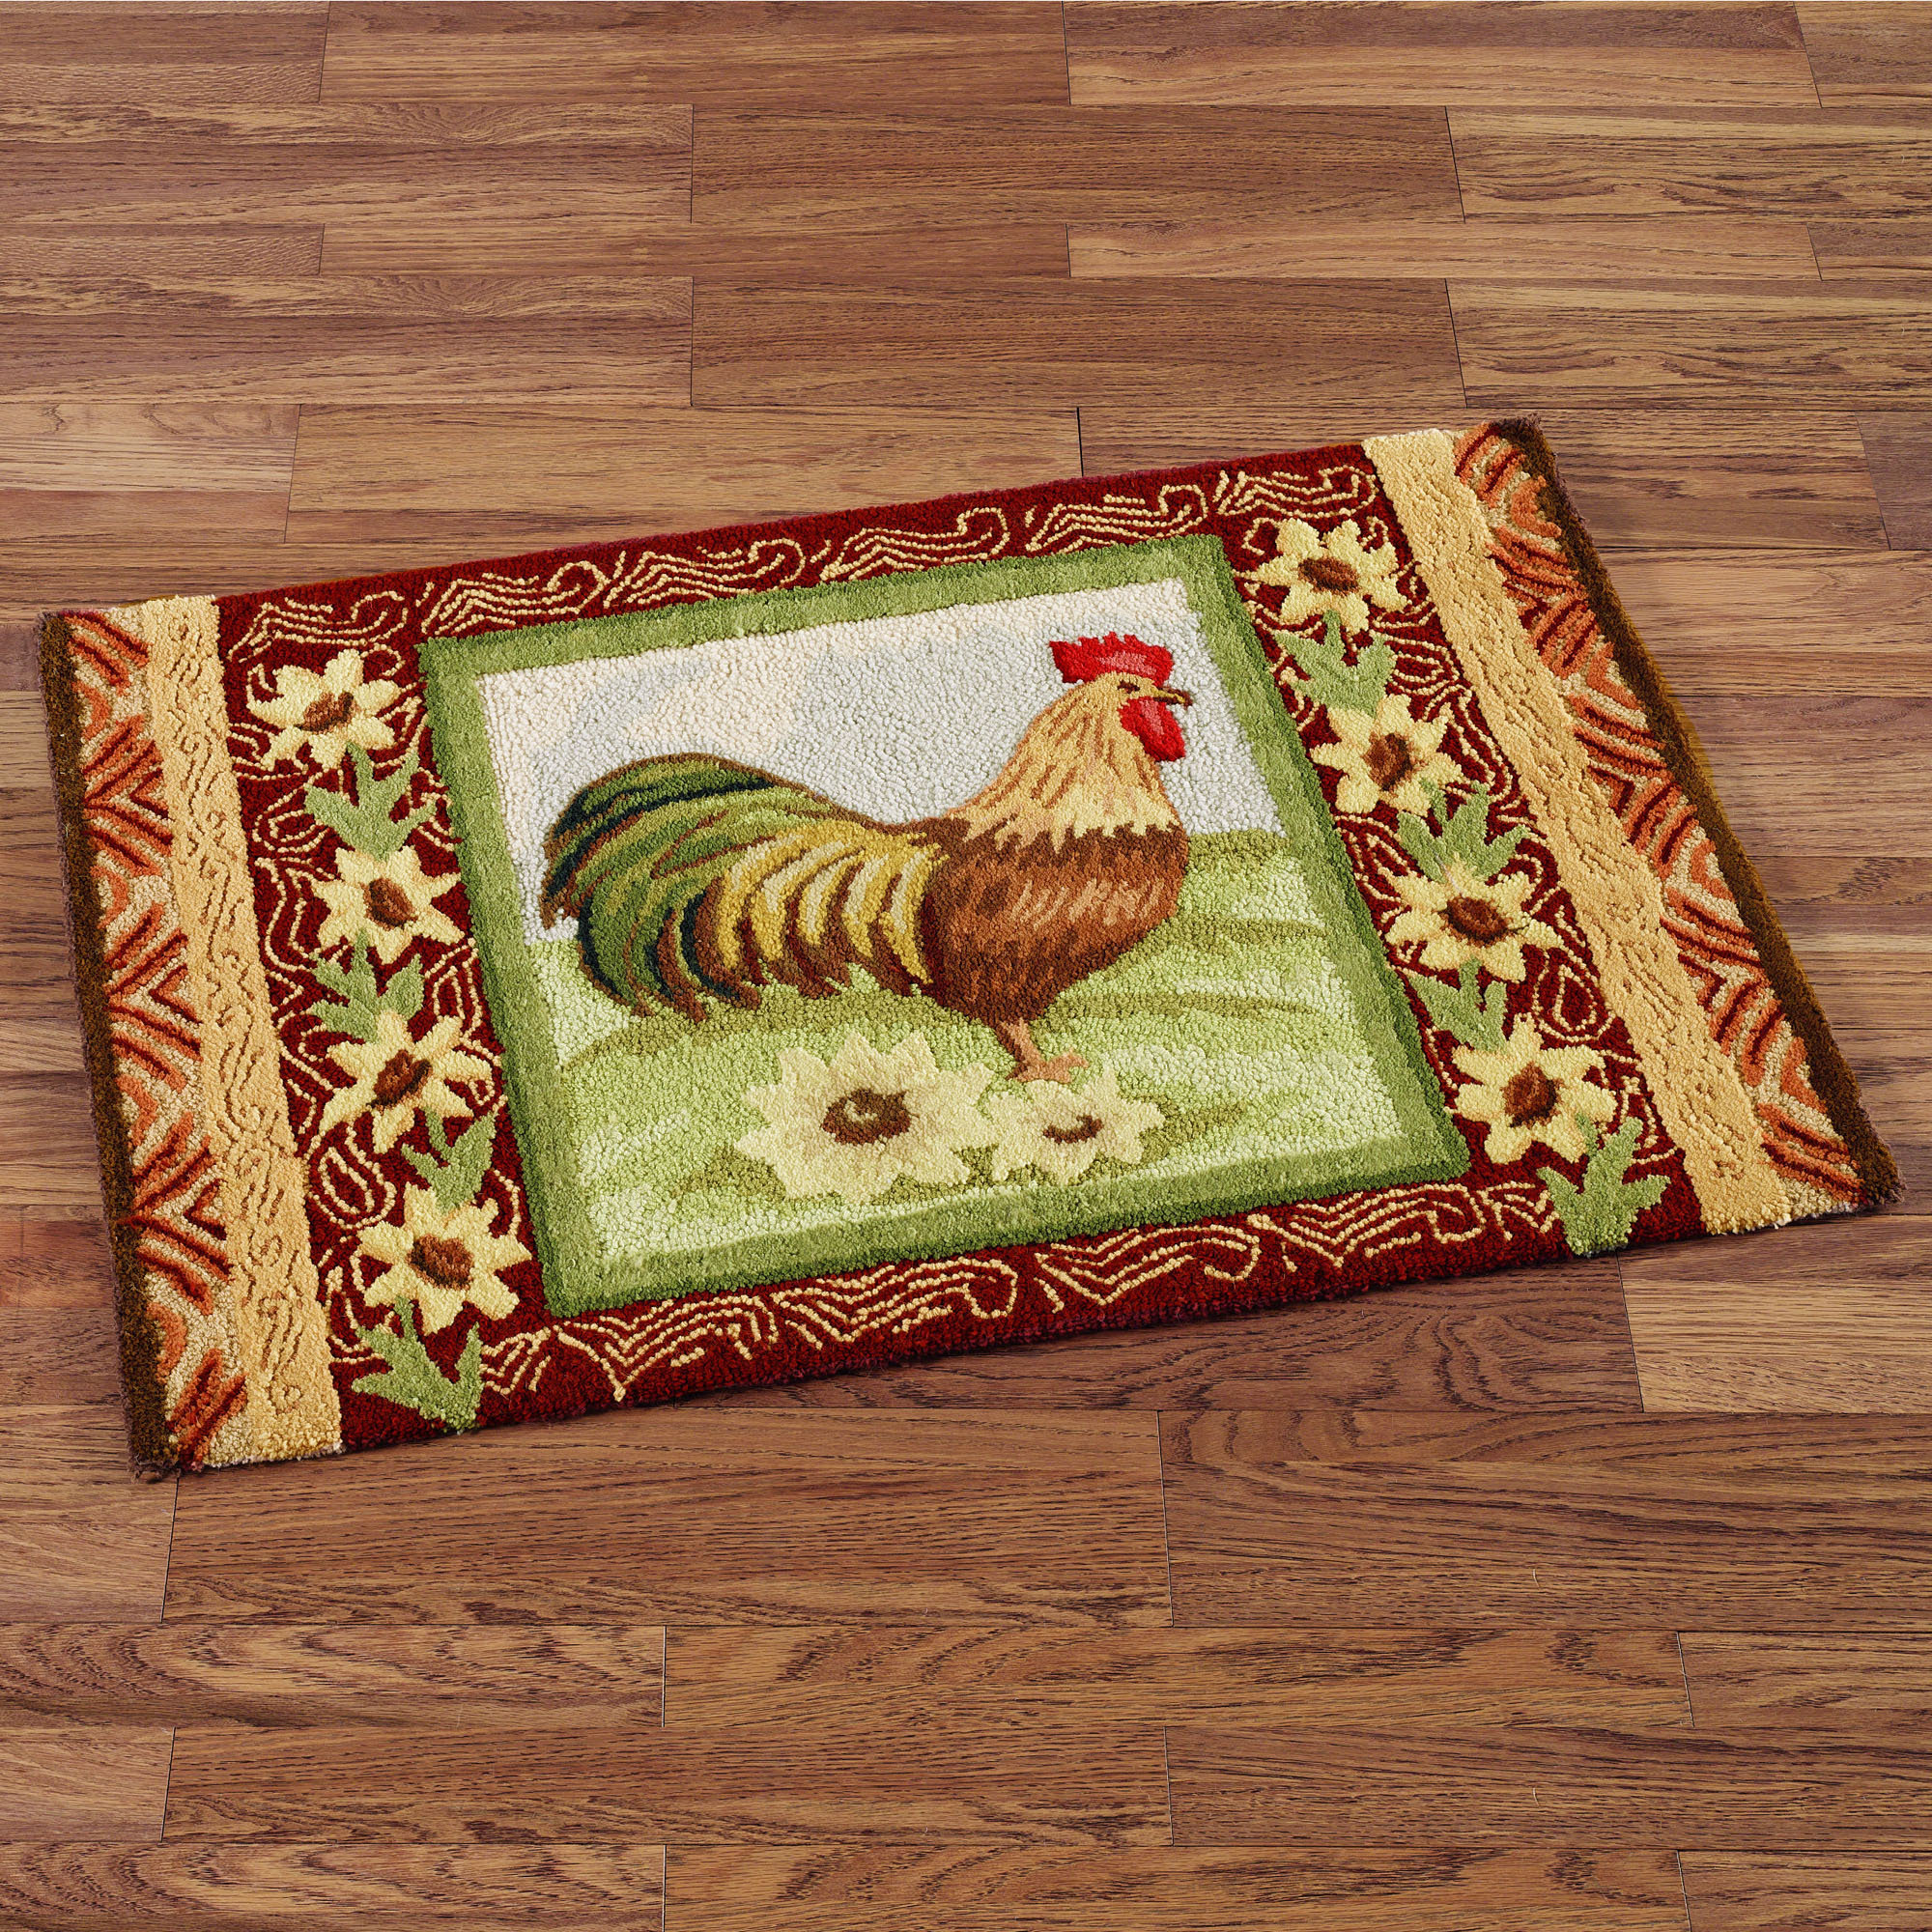 Floor Mats Rugs Kitchen